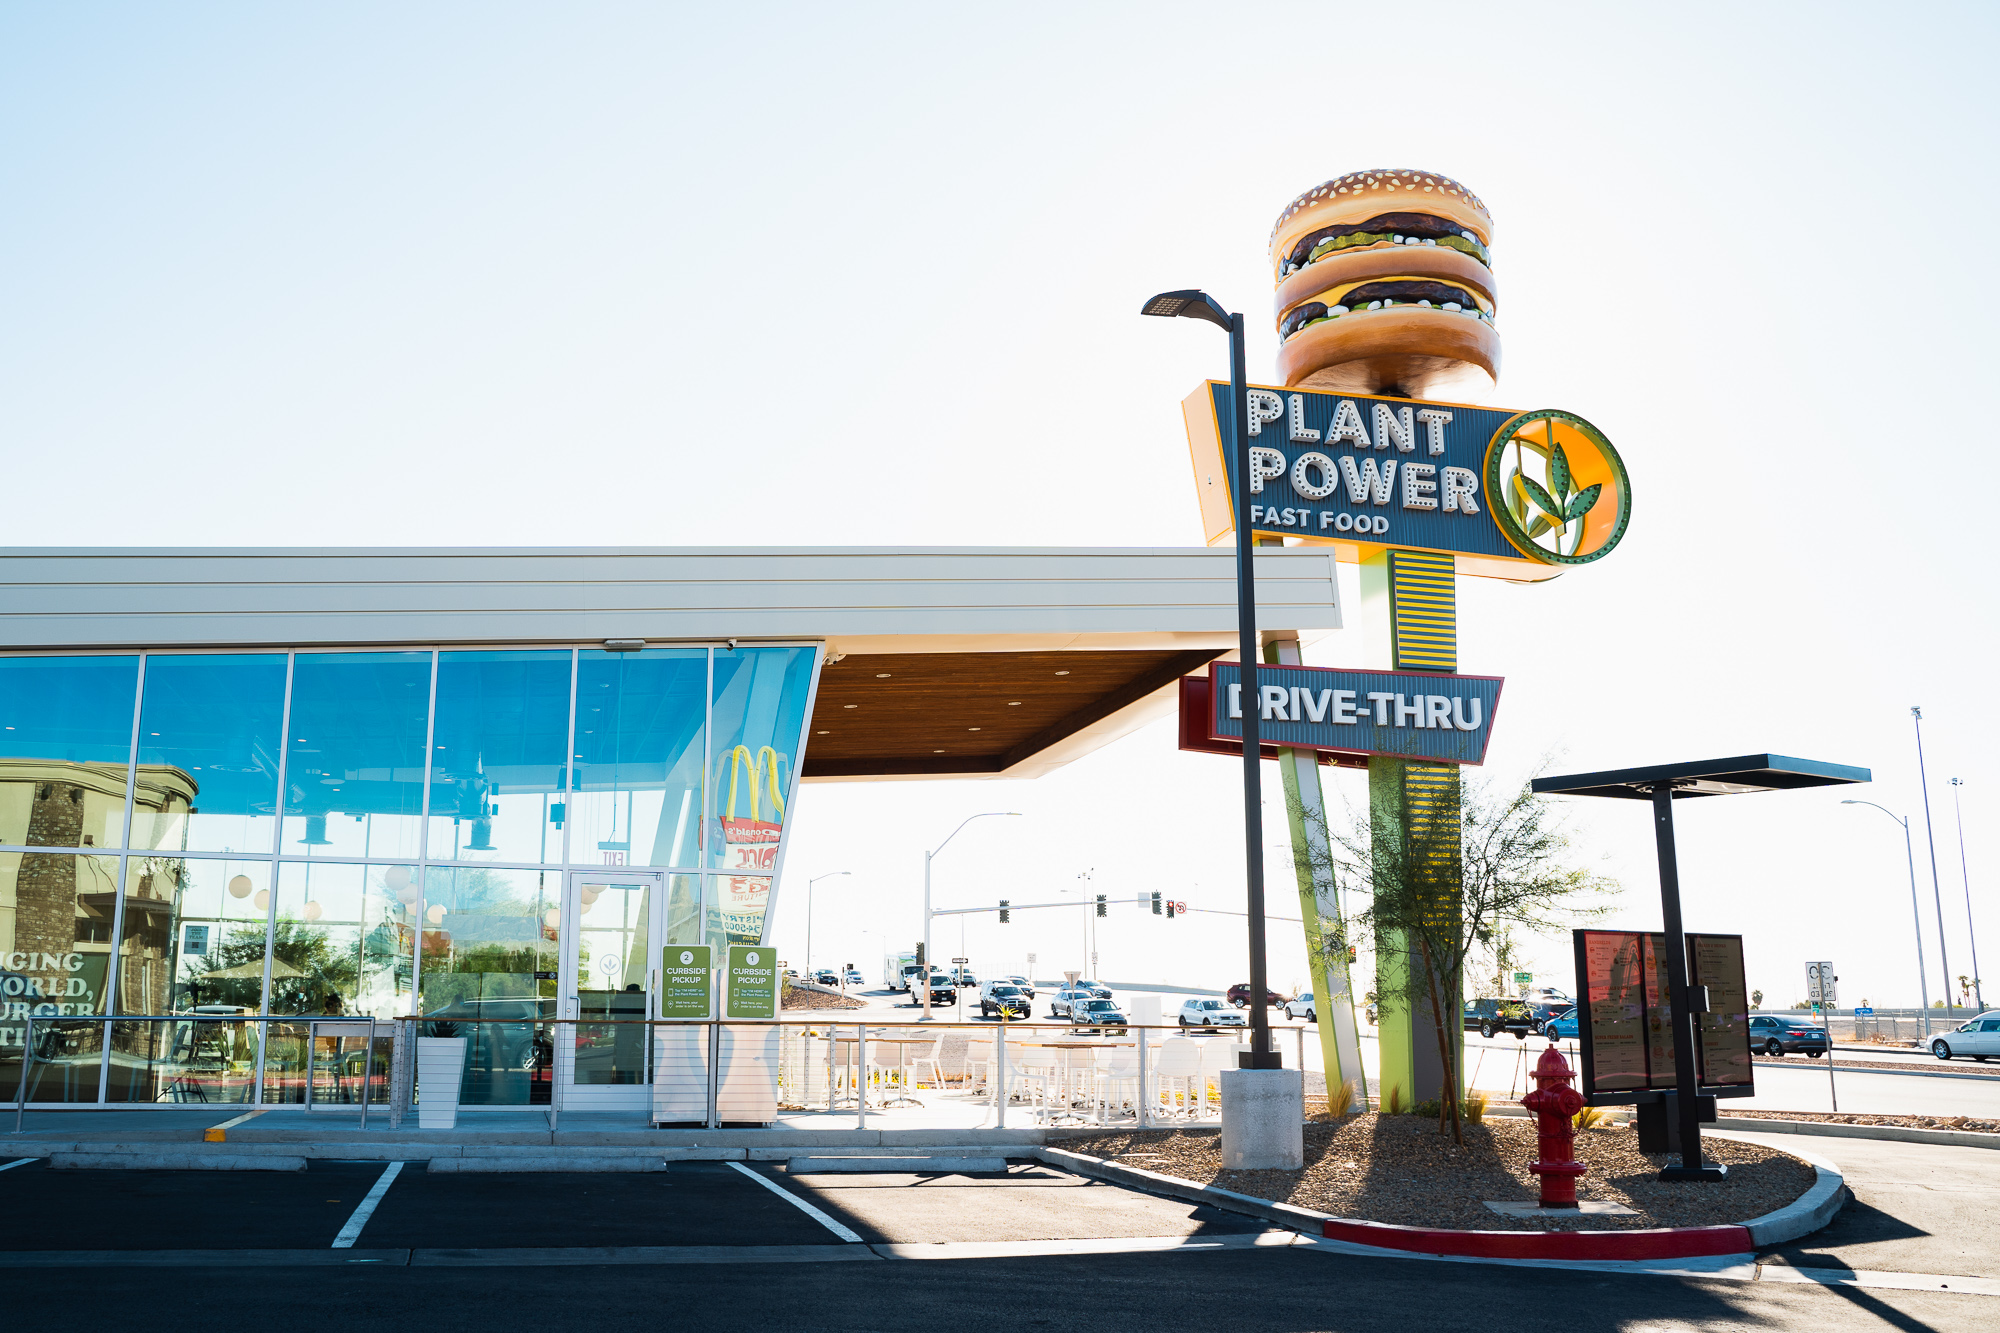 outside of burger joint with wall to ceiling windows and large burger sign